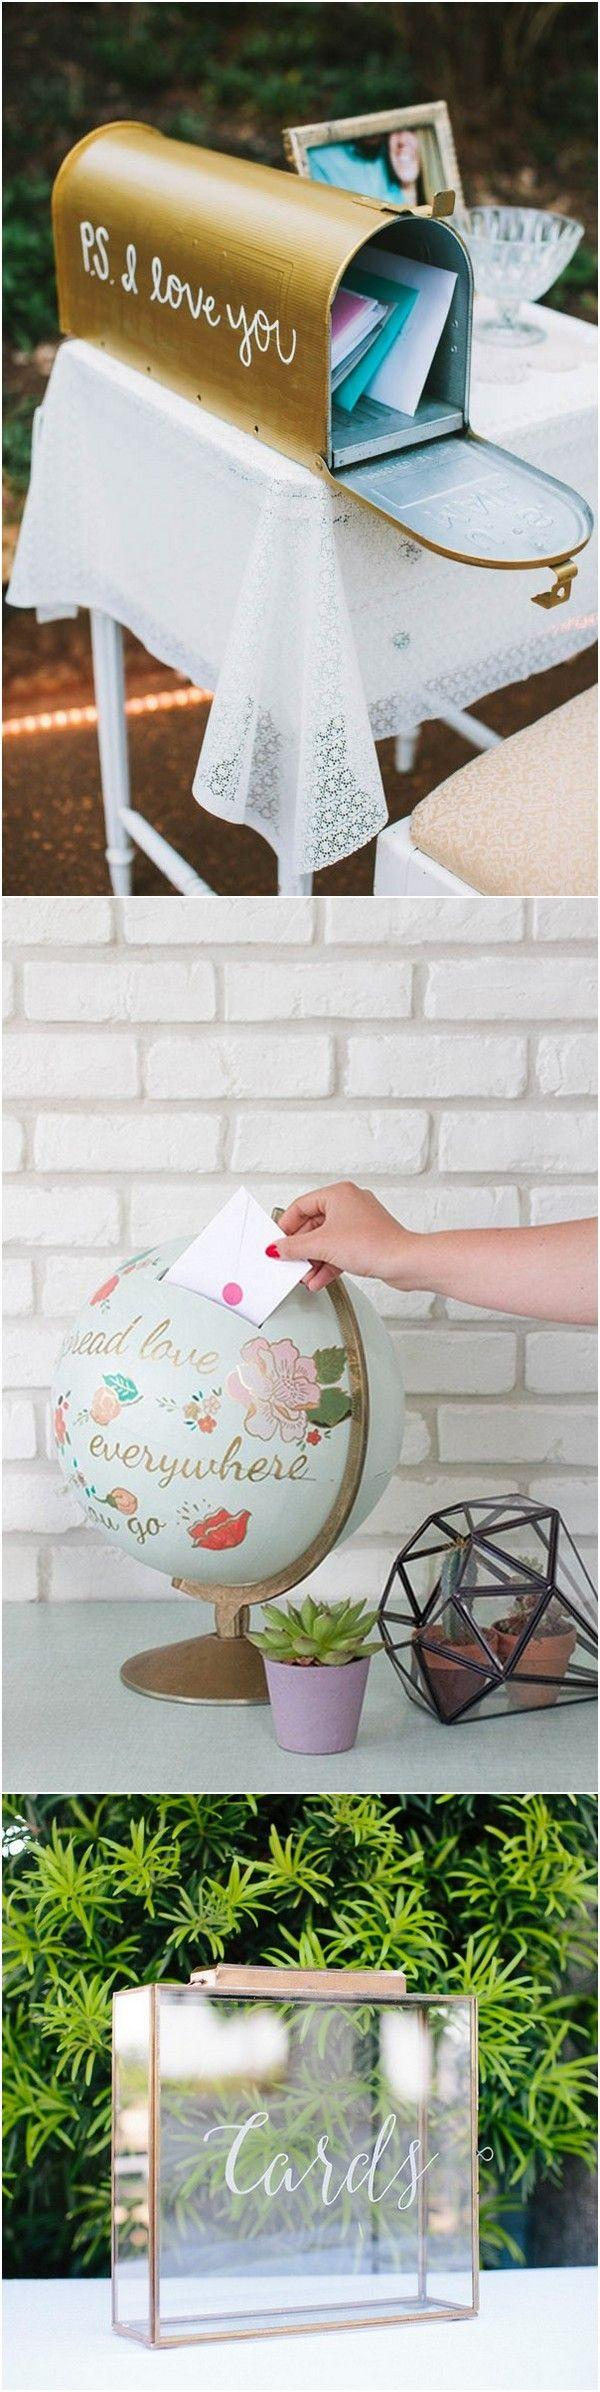 Wedding - 15 Creative Wedding Card Box Ideas To Impress Your Guests